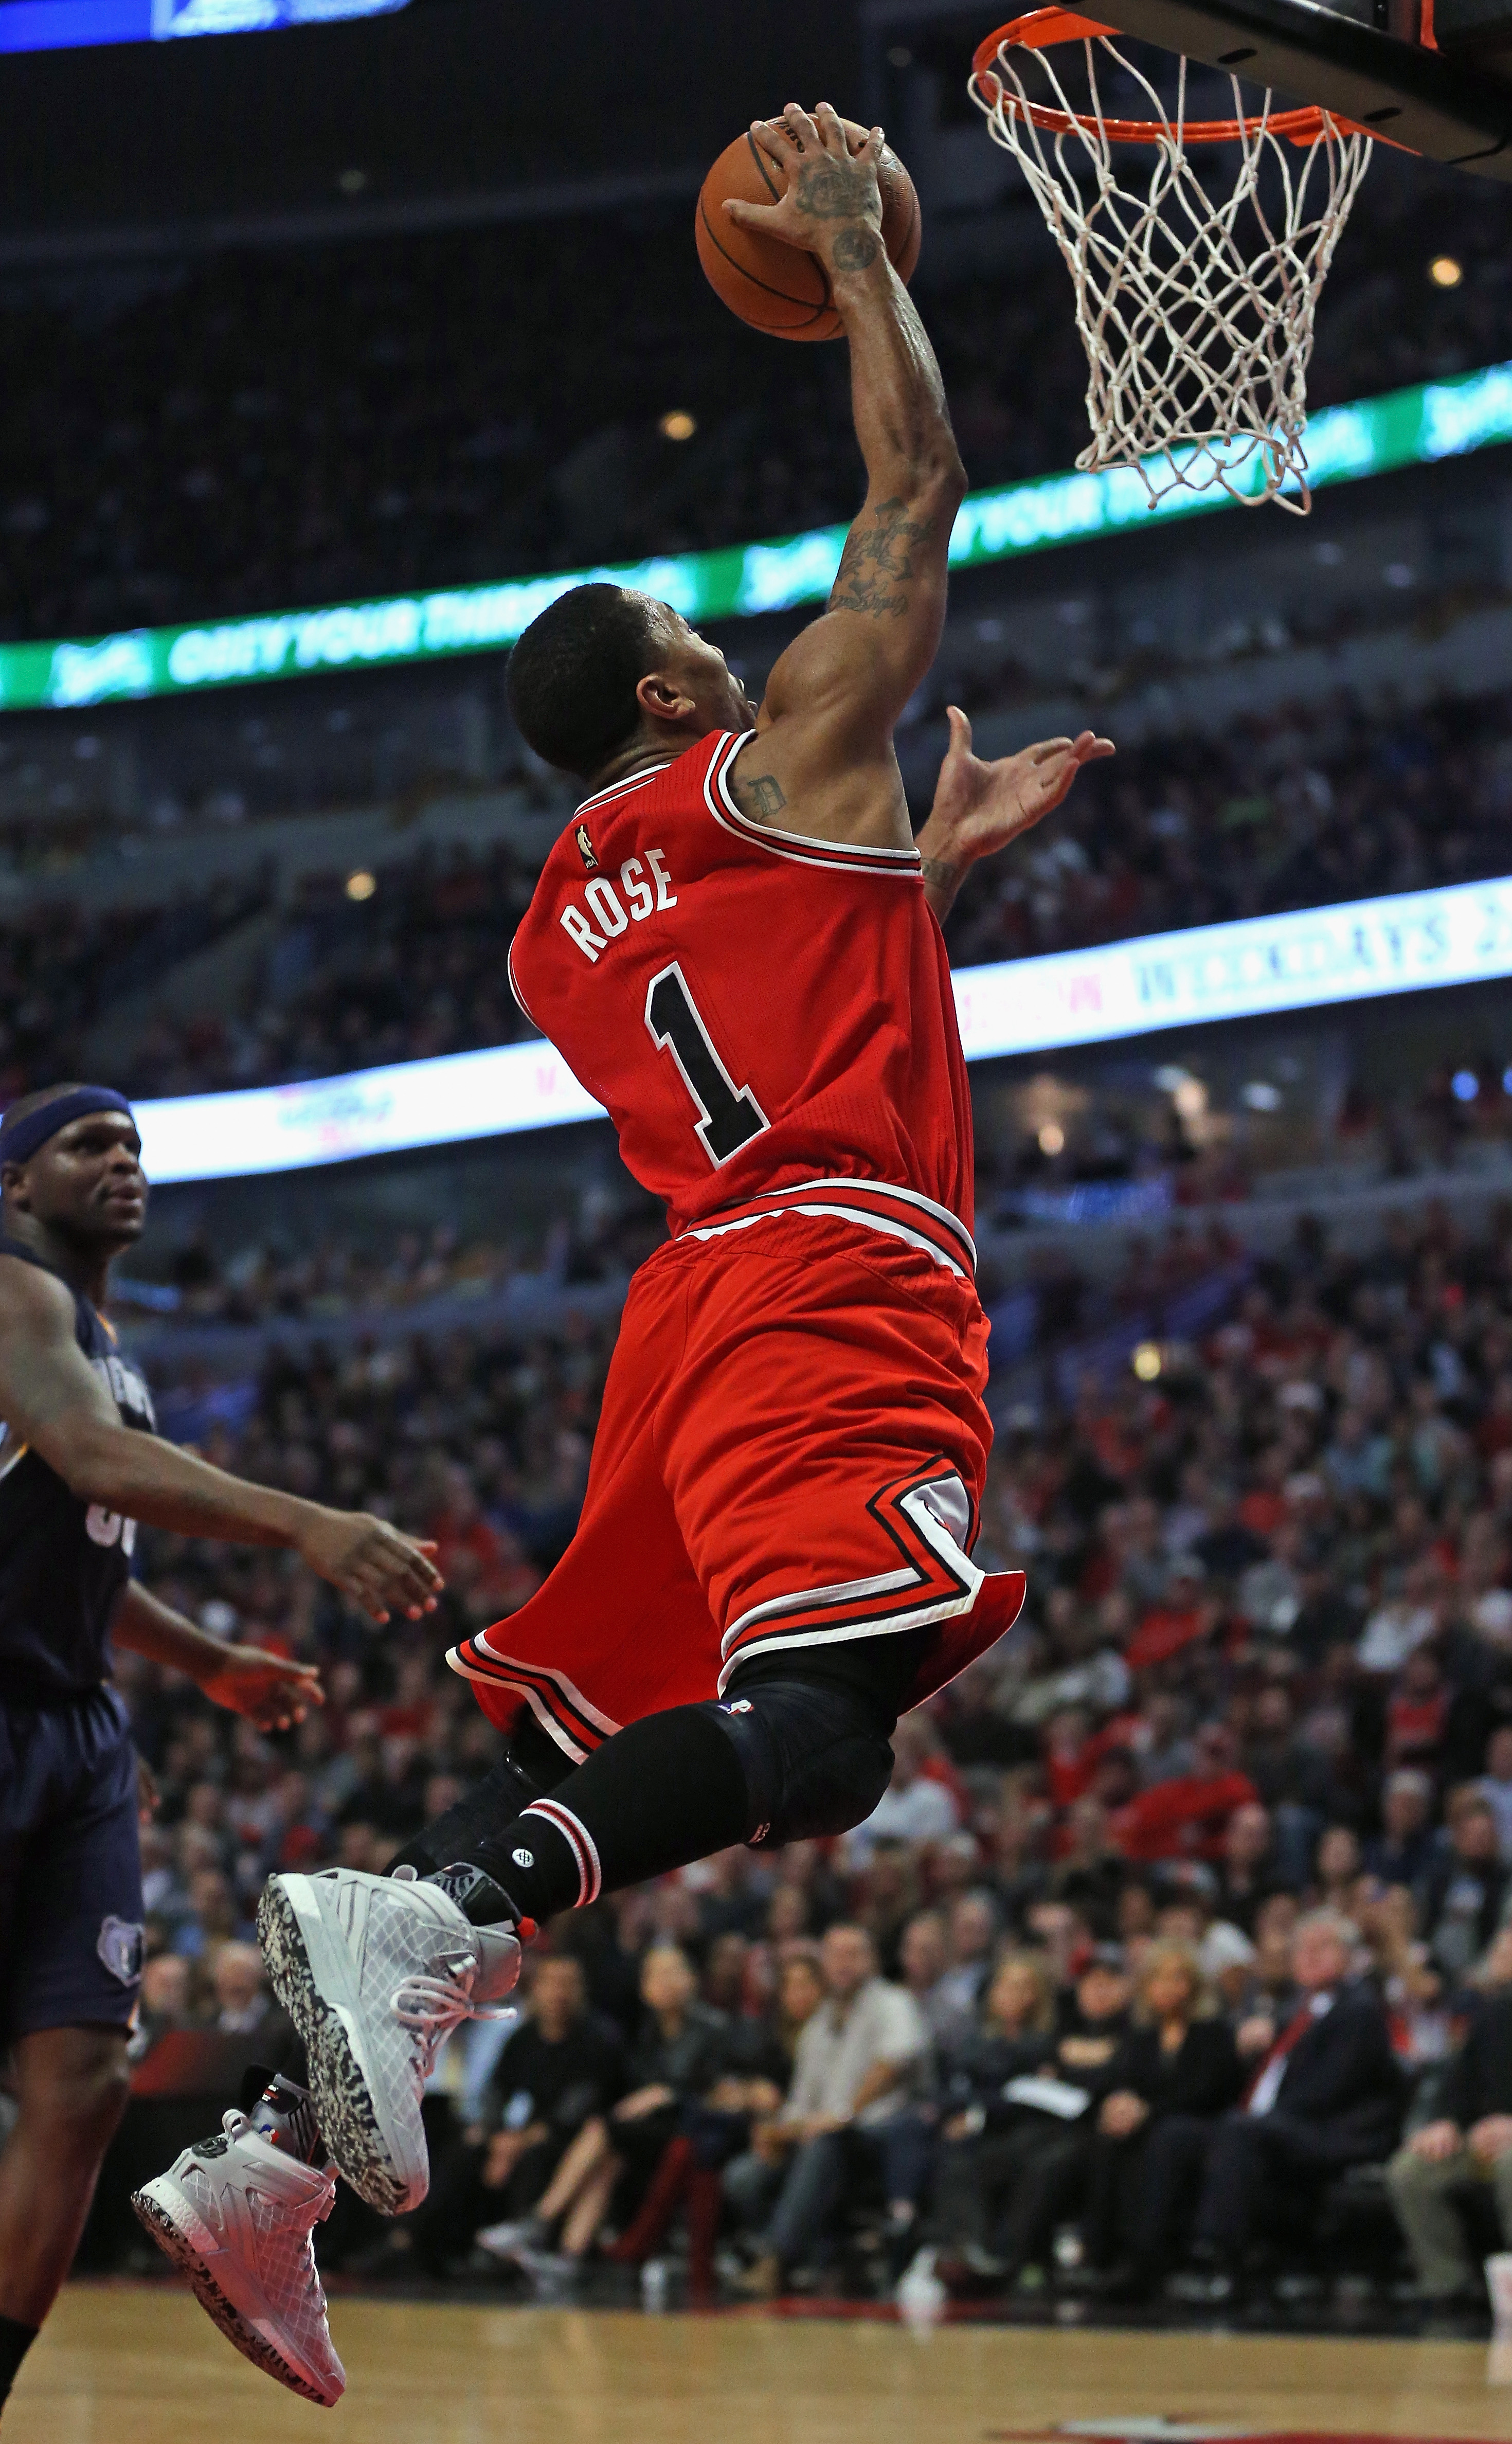 CHICAGO, IL - DECEMBER 16: Derrick Rose #1 of the Chicago Bulls goes up for a shot against the Memphis Grizzlies at the United Center on December 16, 2015 in Chicago, Illinois. The Bulls defeated the Grizzlies 98-85. (Photo by Jonathan Daniel/Getty Images